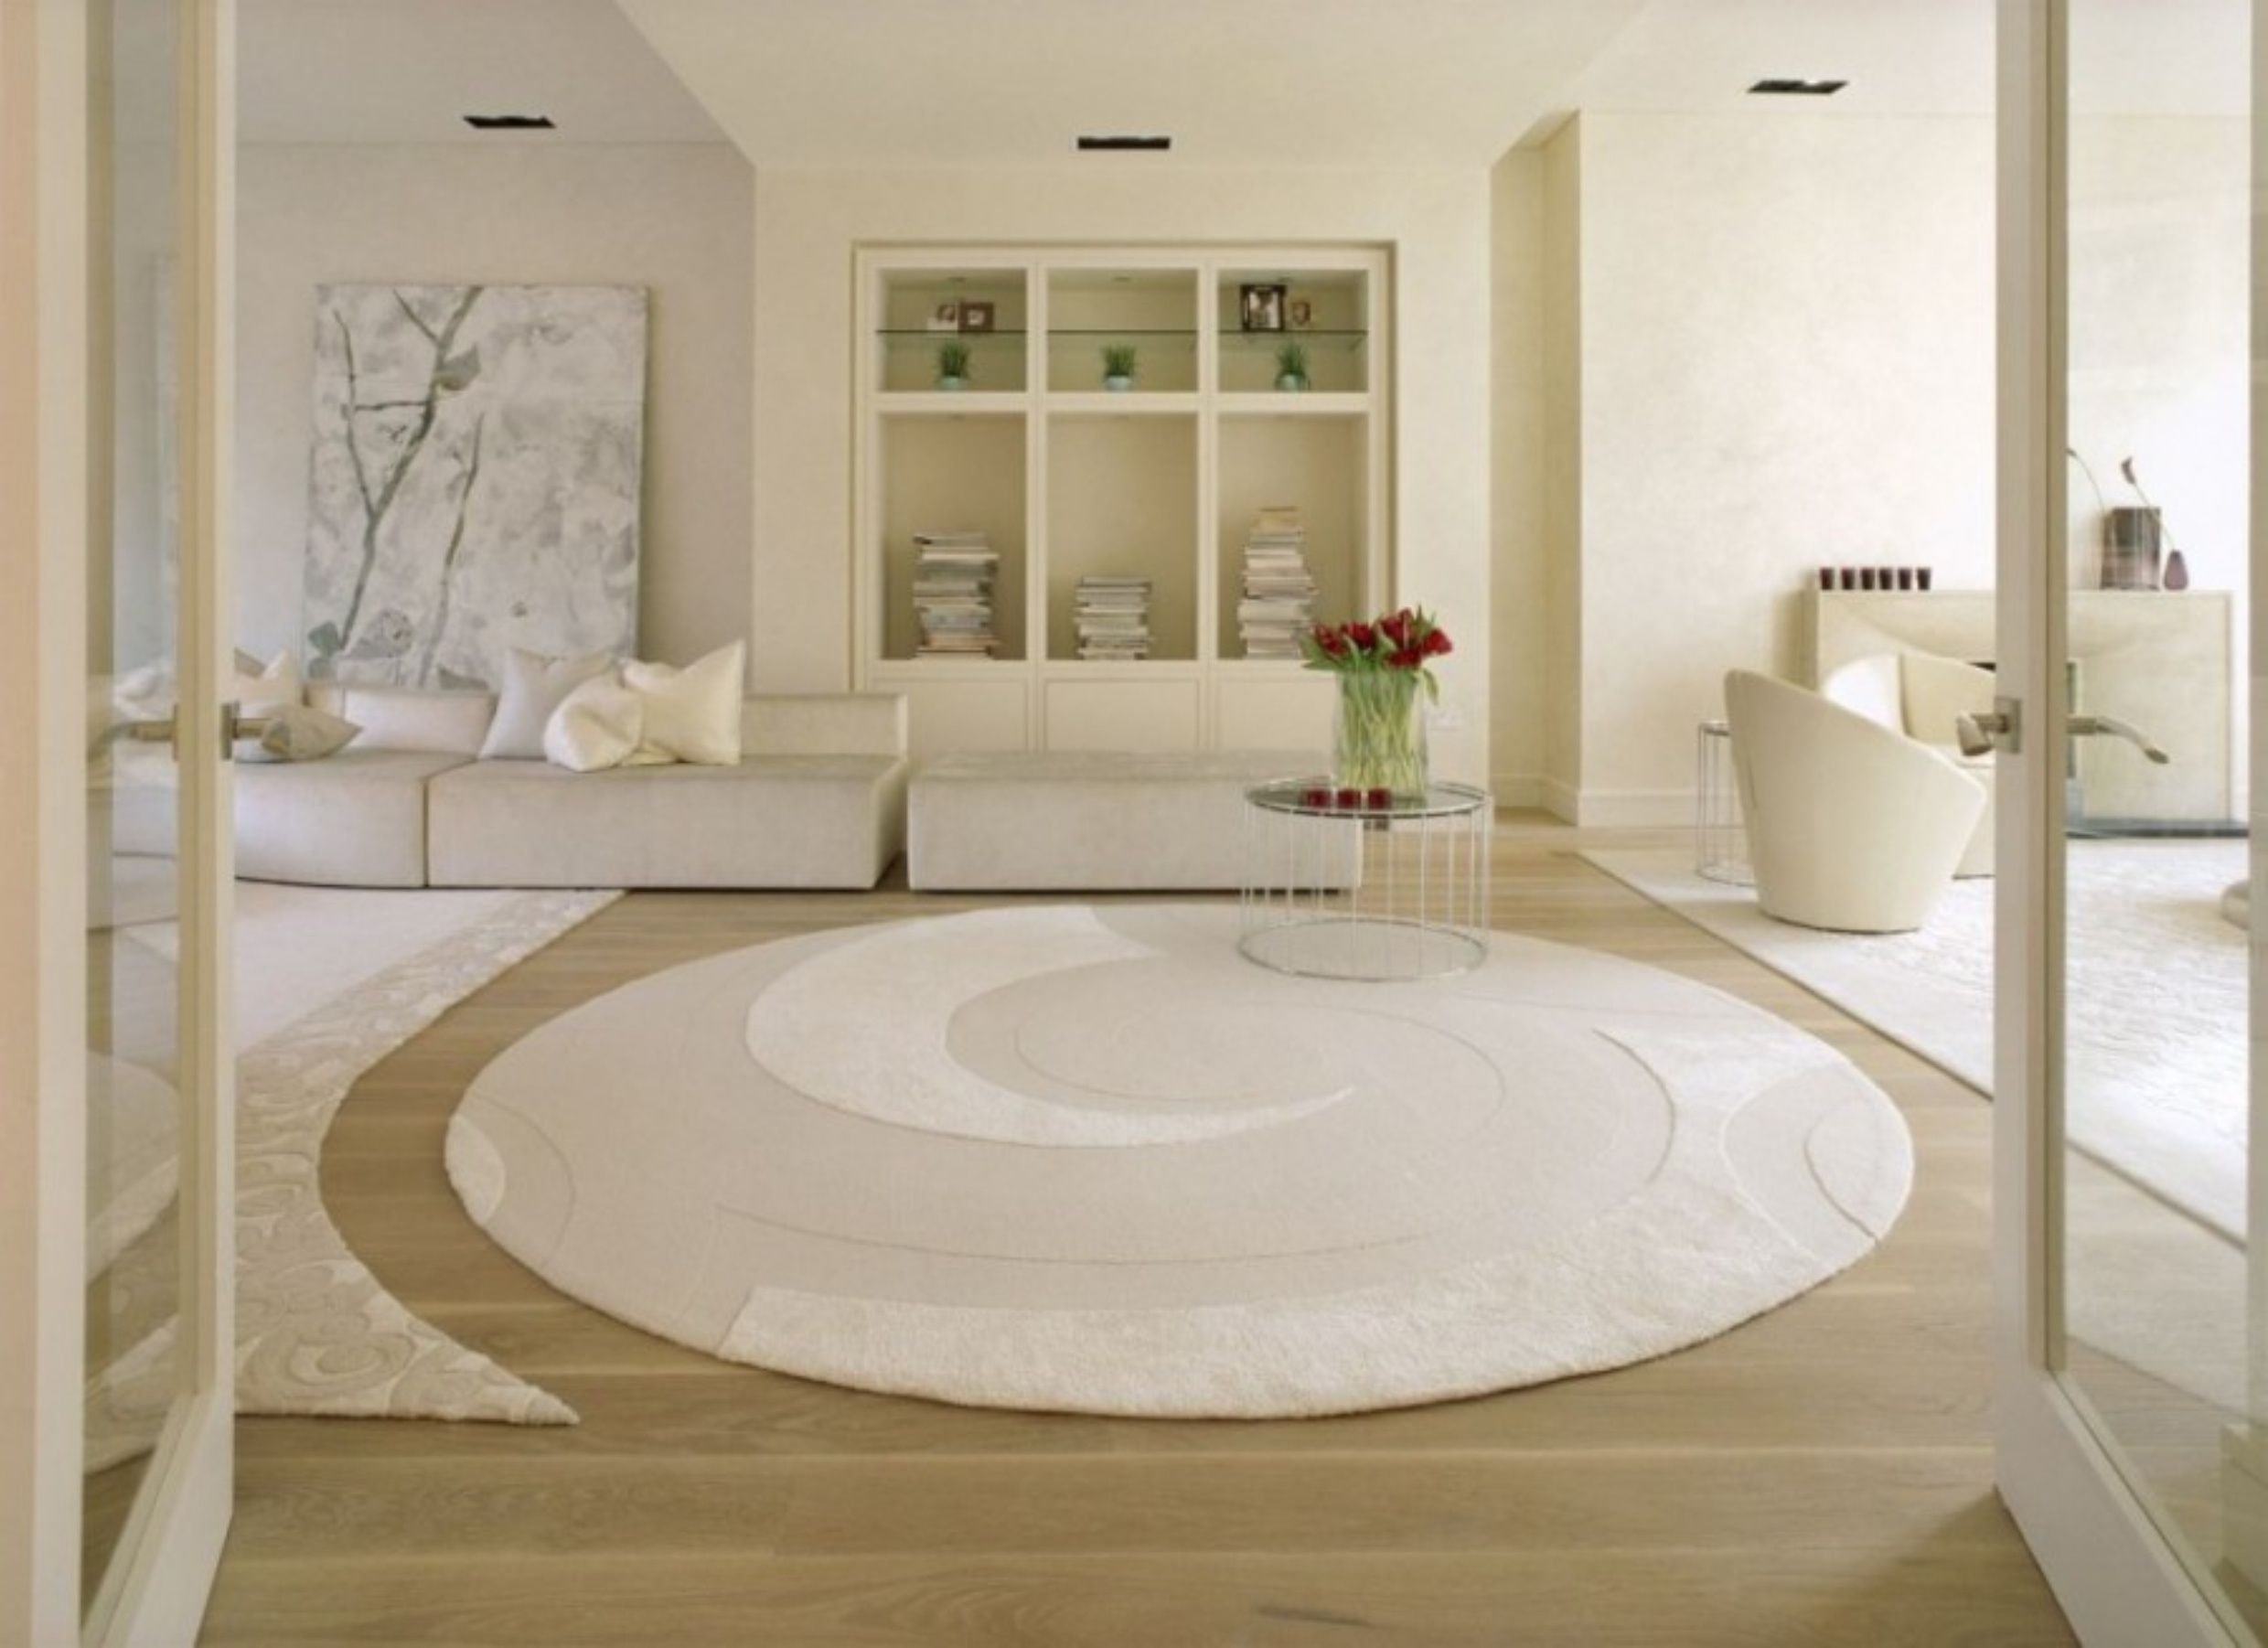 Large Round Bathroom Rugs White Round Extra Large Bathroom Rug